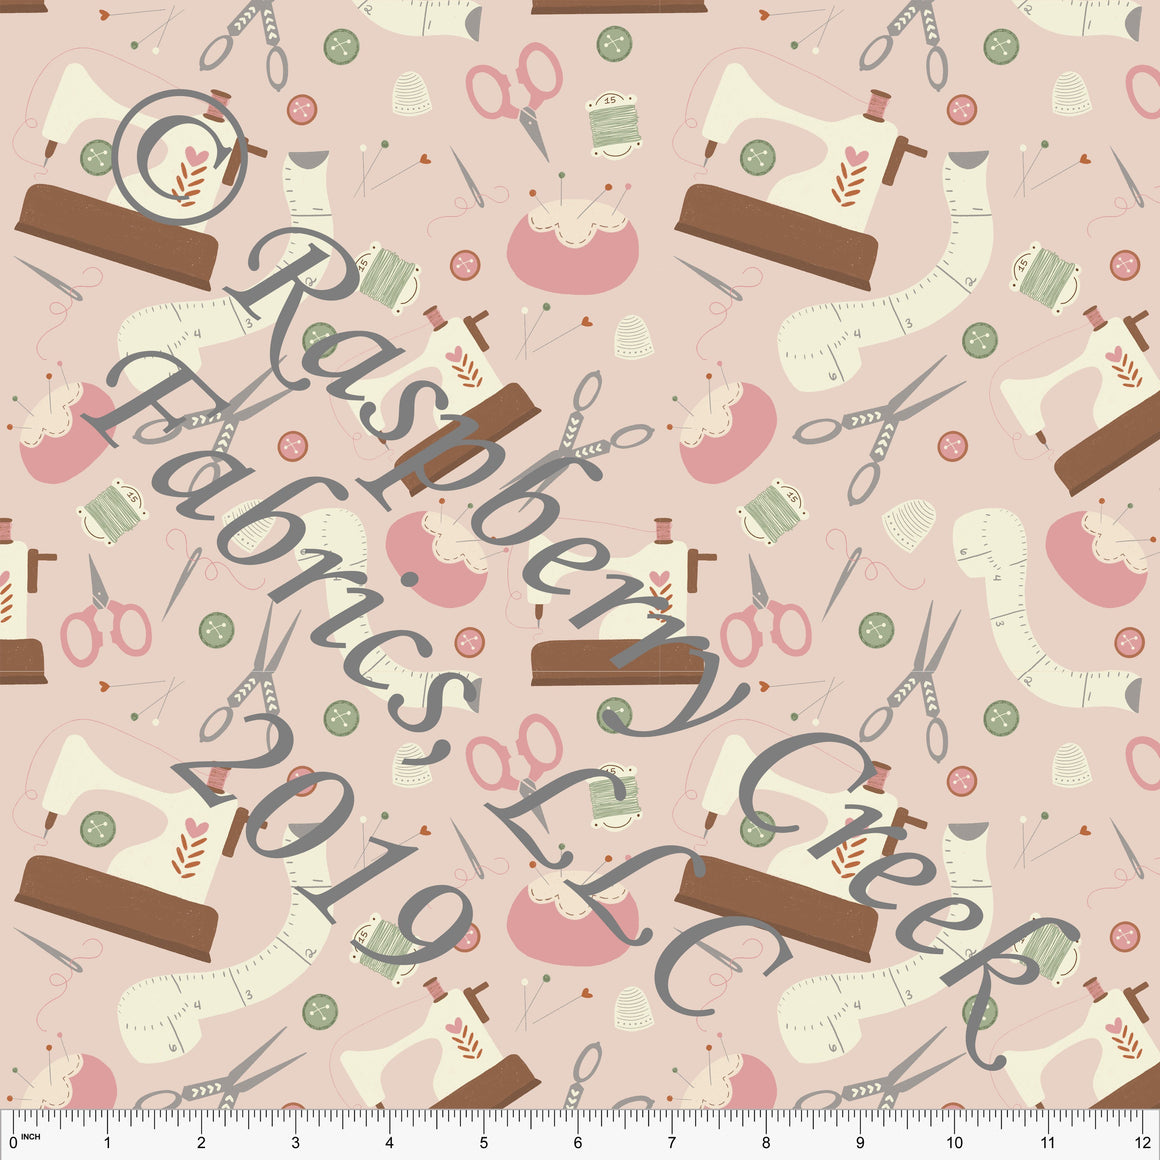 Light Blush Cream Brown Grey and Bright Sage Sewing Tossed Print 4 Way Stretch Double Brushed Poly ,By Stephani MacLeod for CLUB Fabrics - Raspberry Creek Fabrics